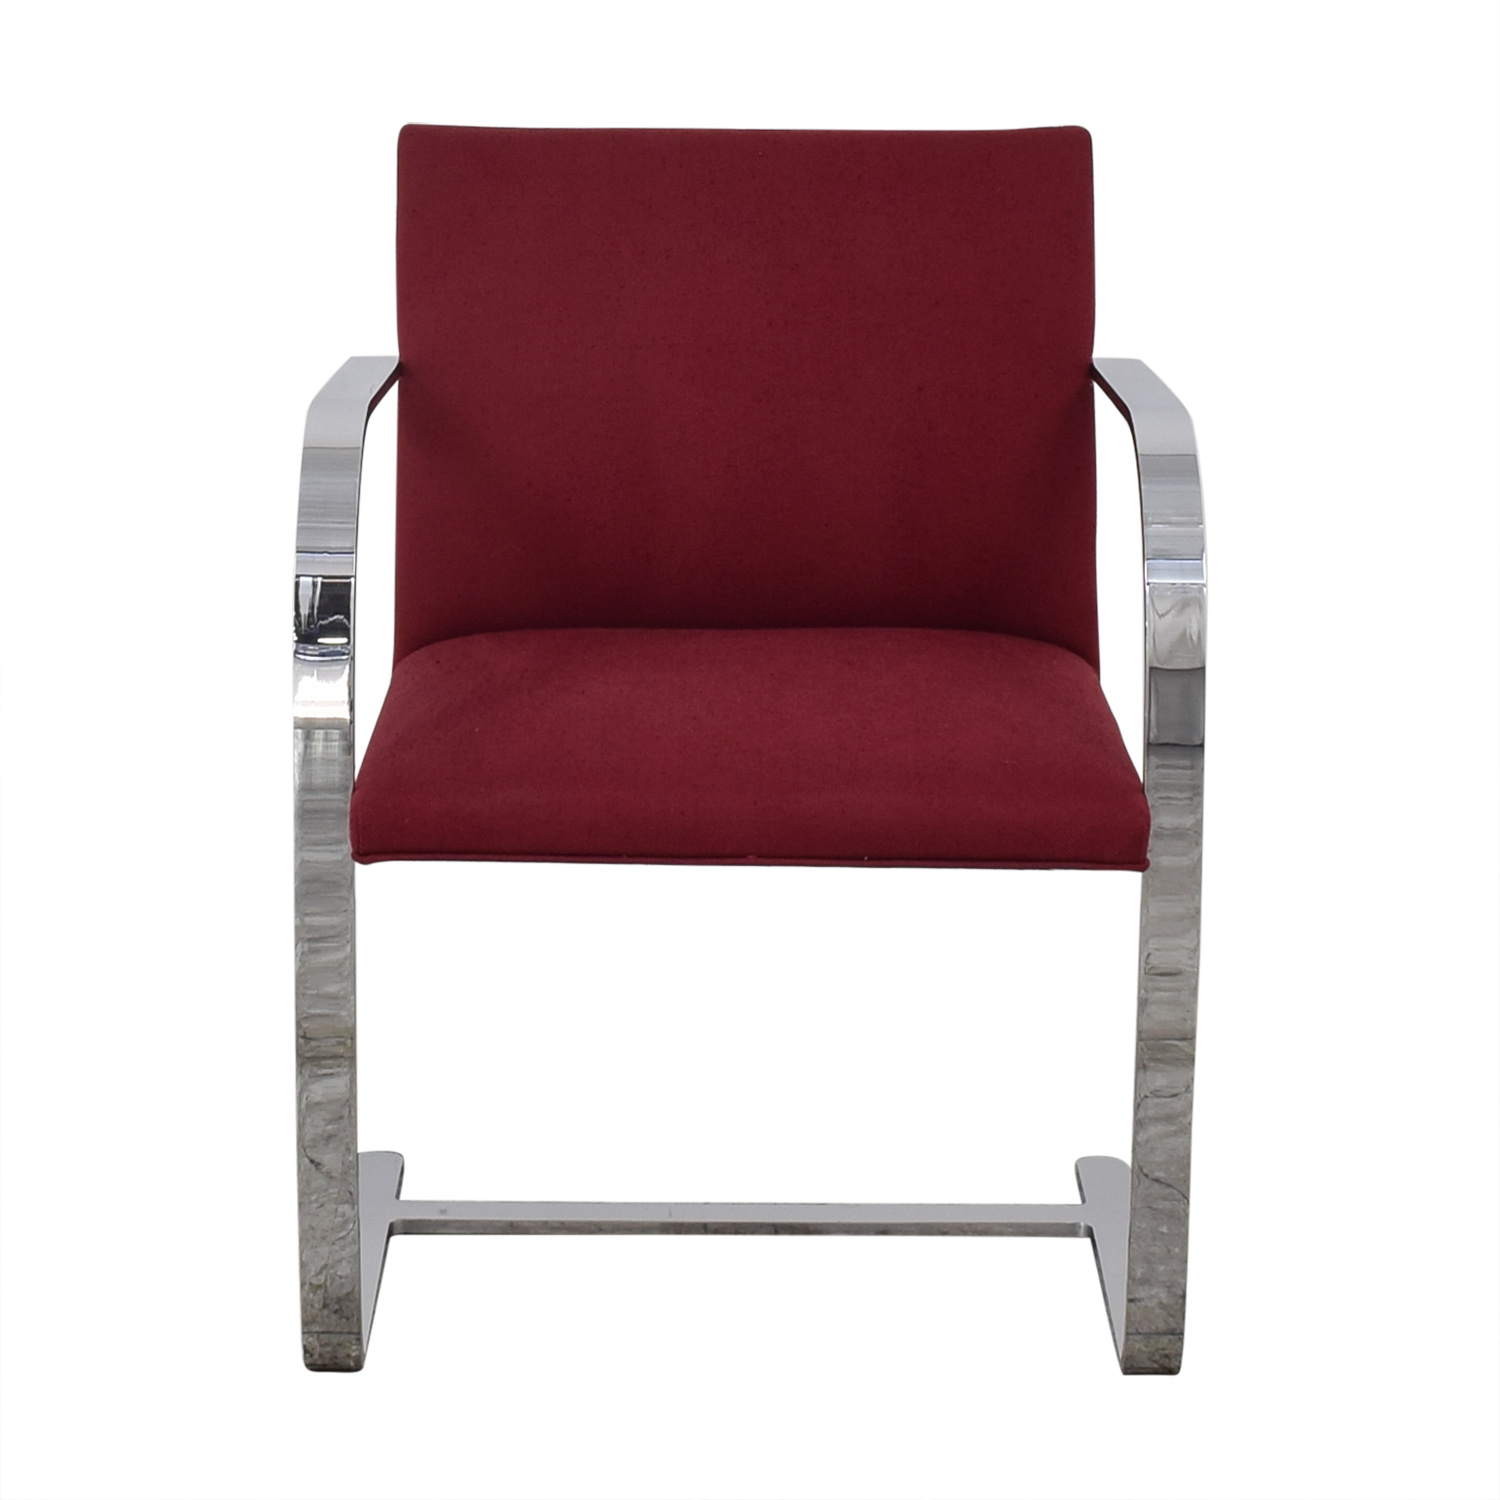 buy Knoll BRNO Chair with Flat Bar Frame Knoll Chairs